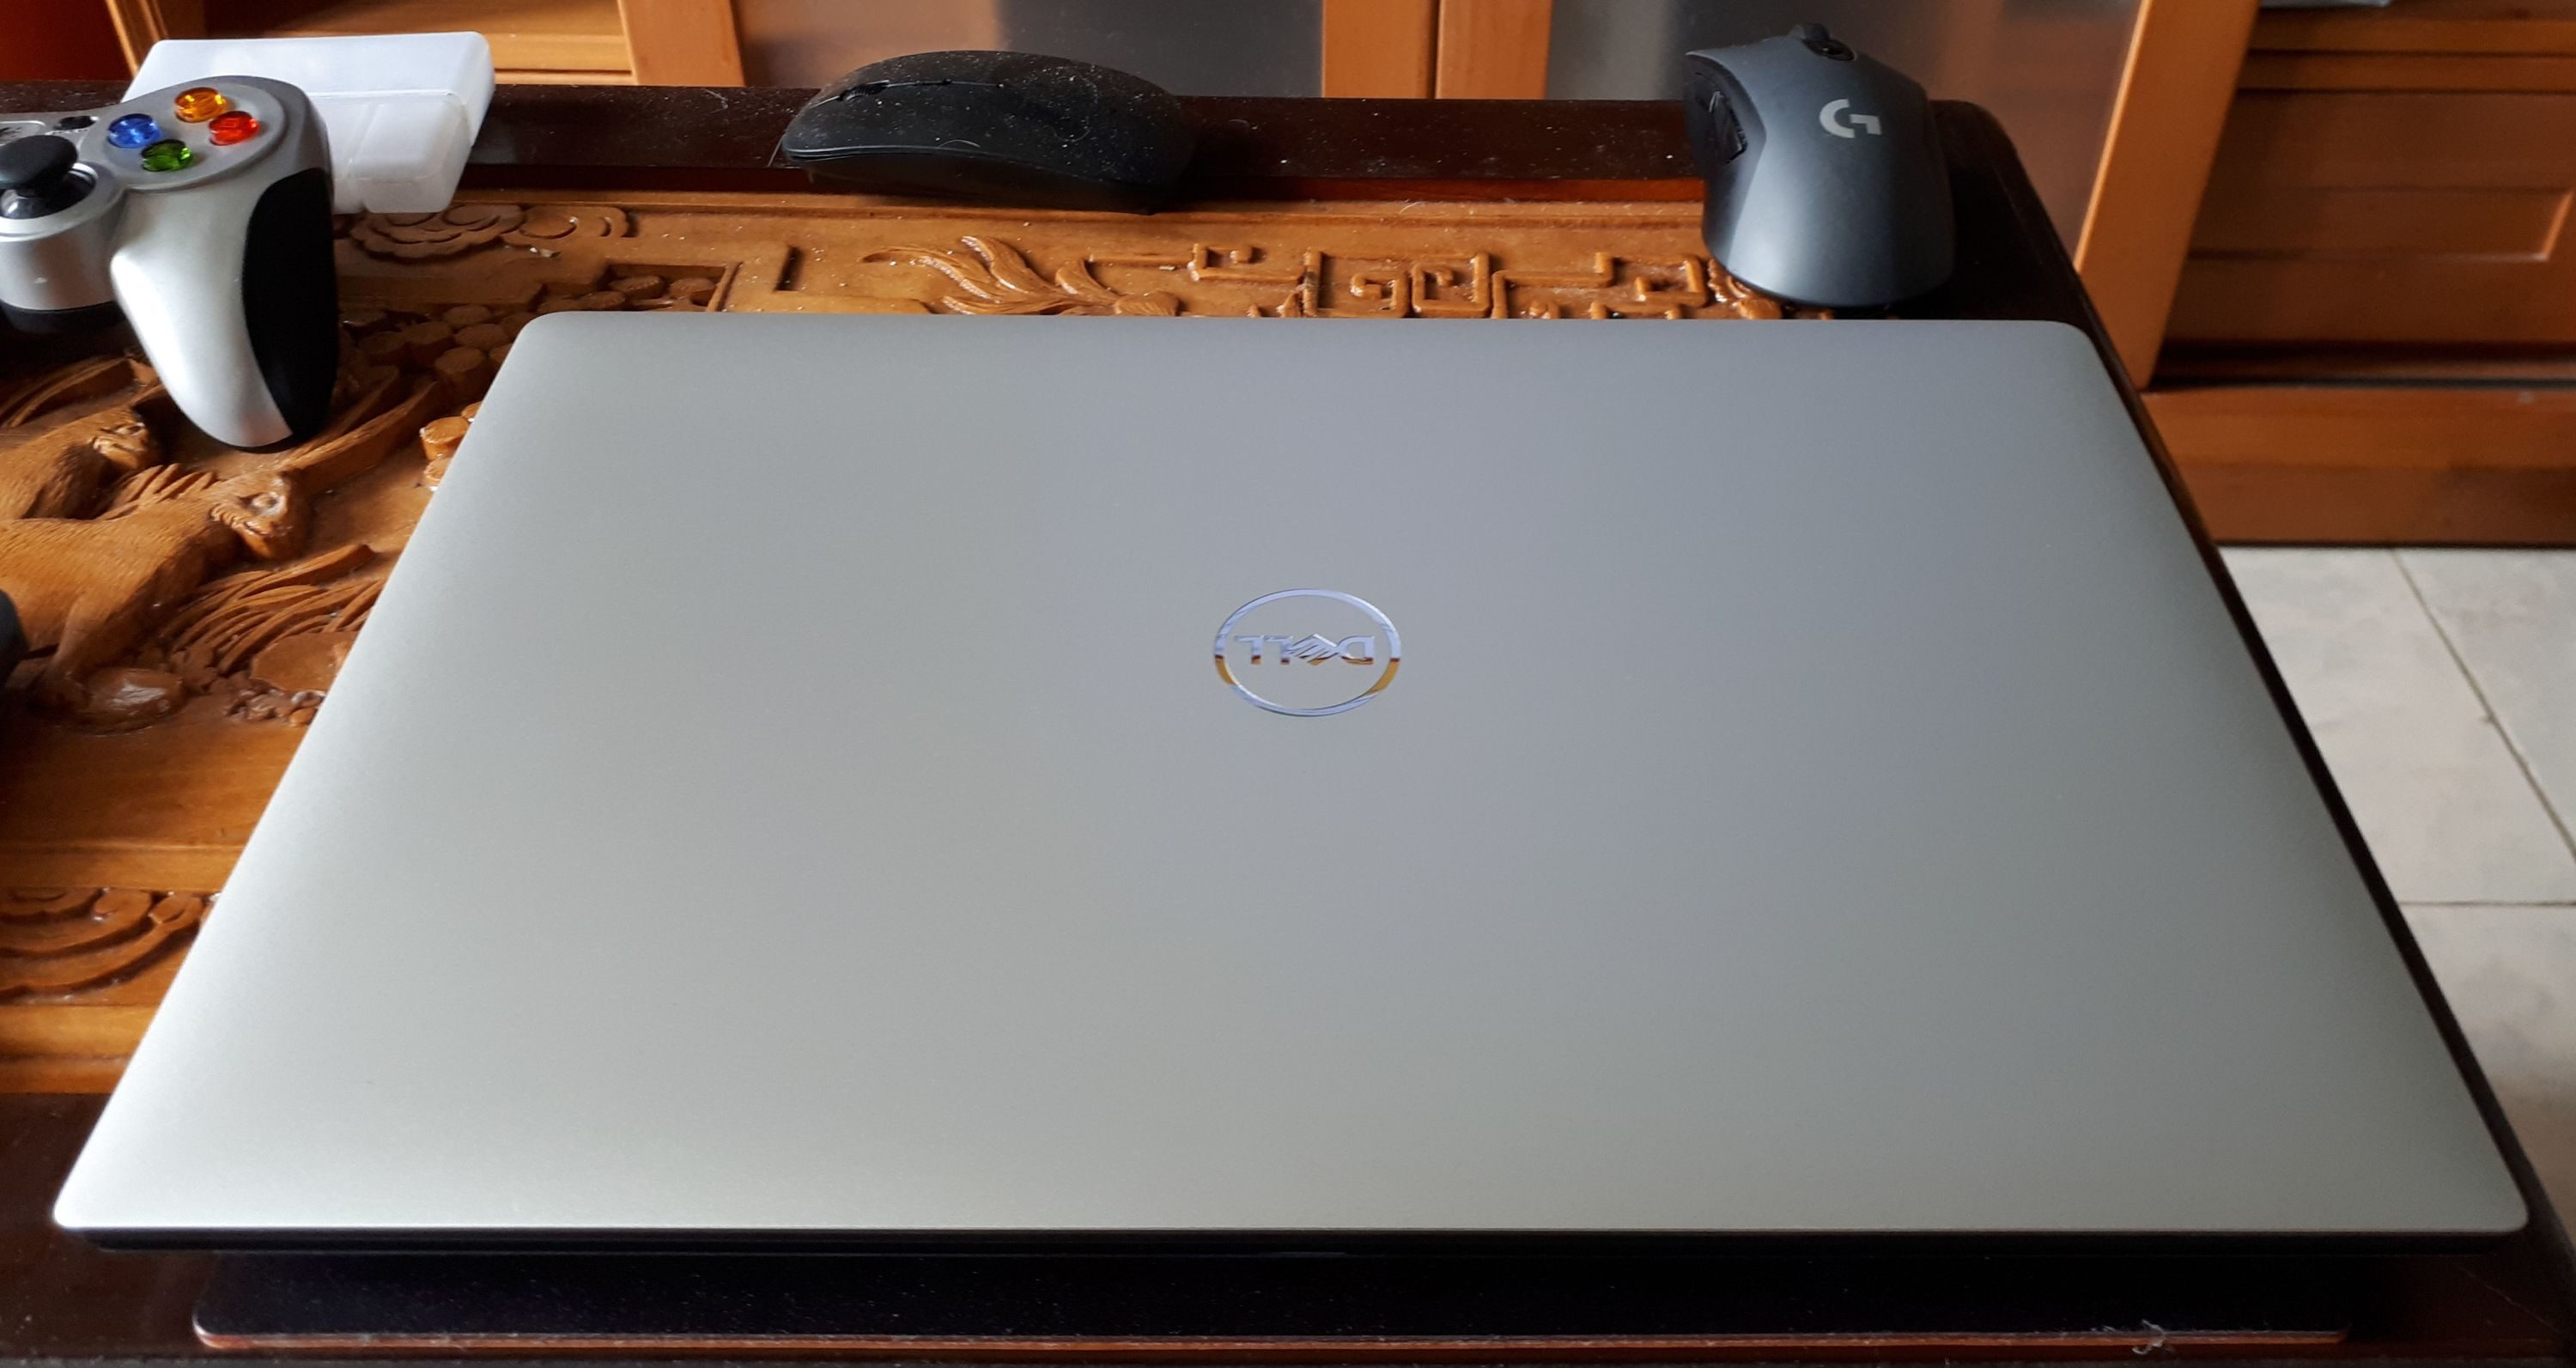 Dell XPS 15 9570 review (i7-8750H, GTX 1050 Ti Max-Q, FHD